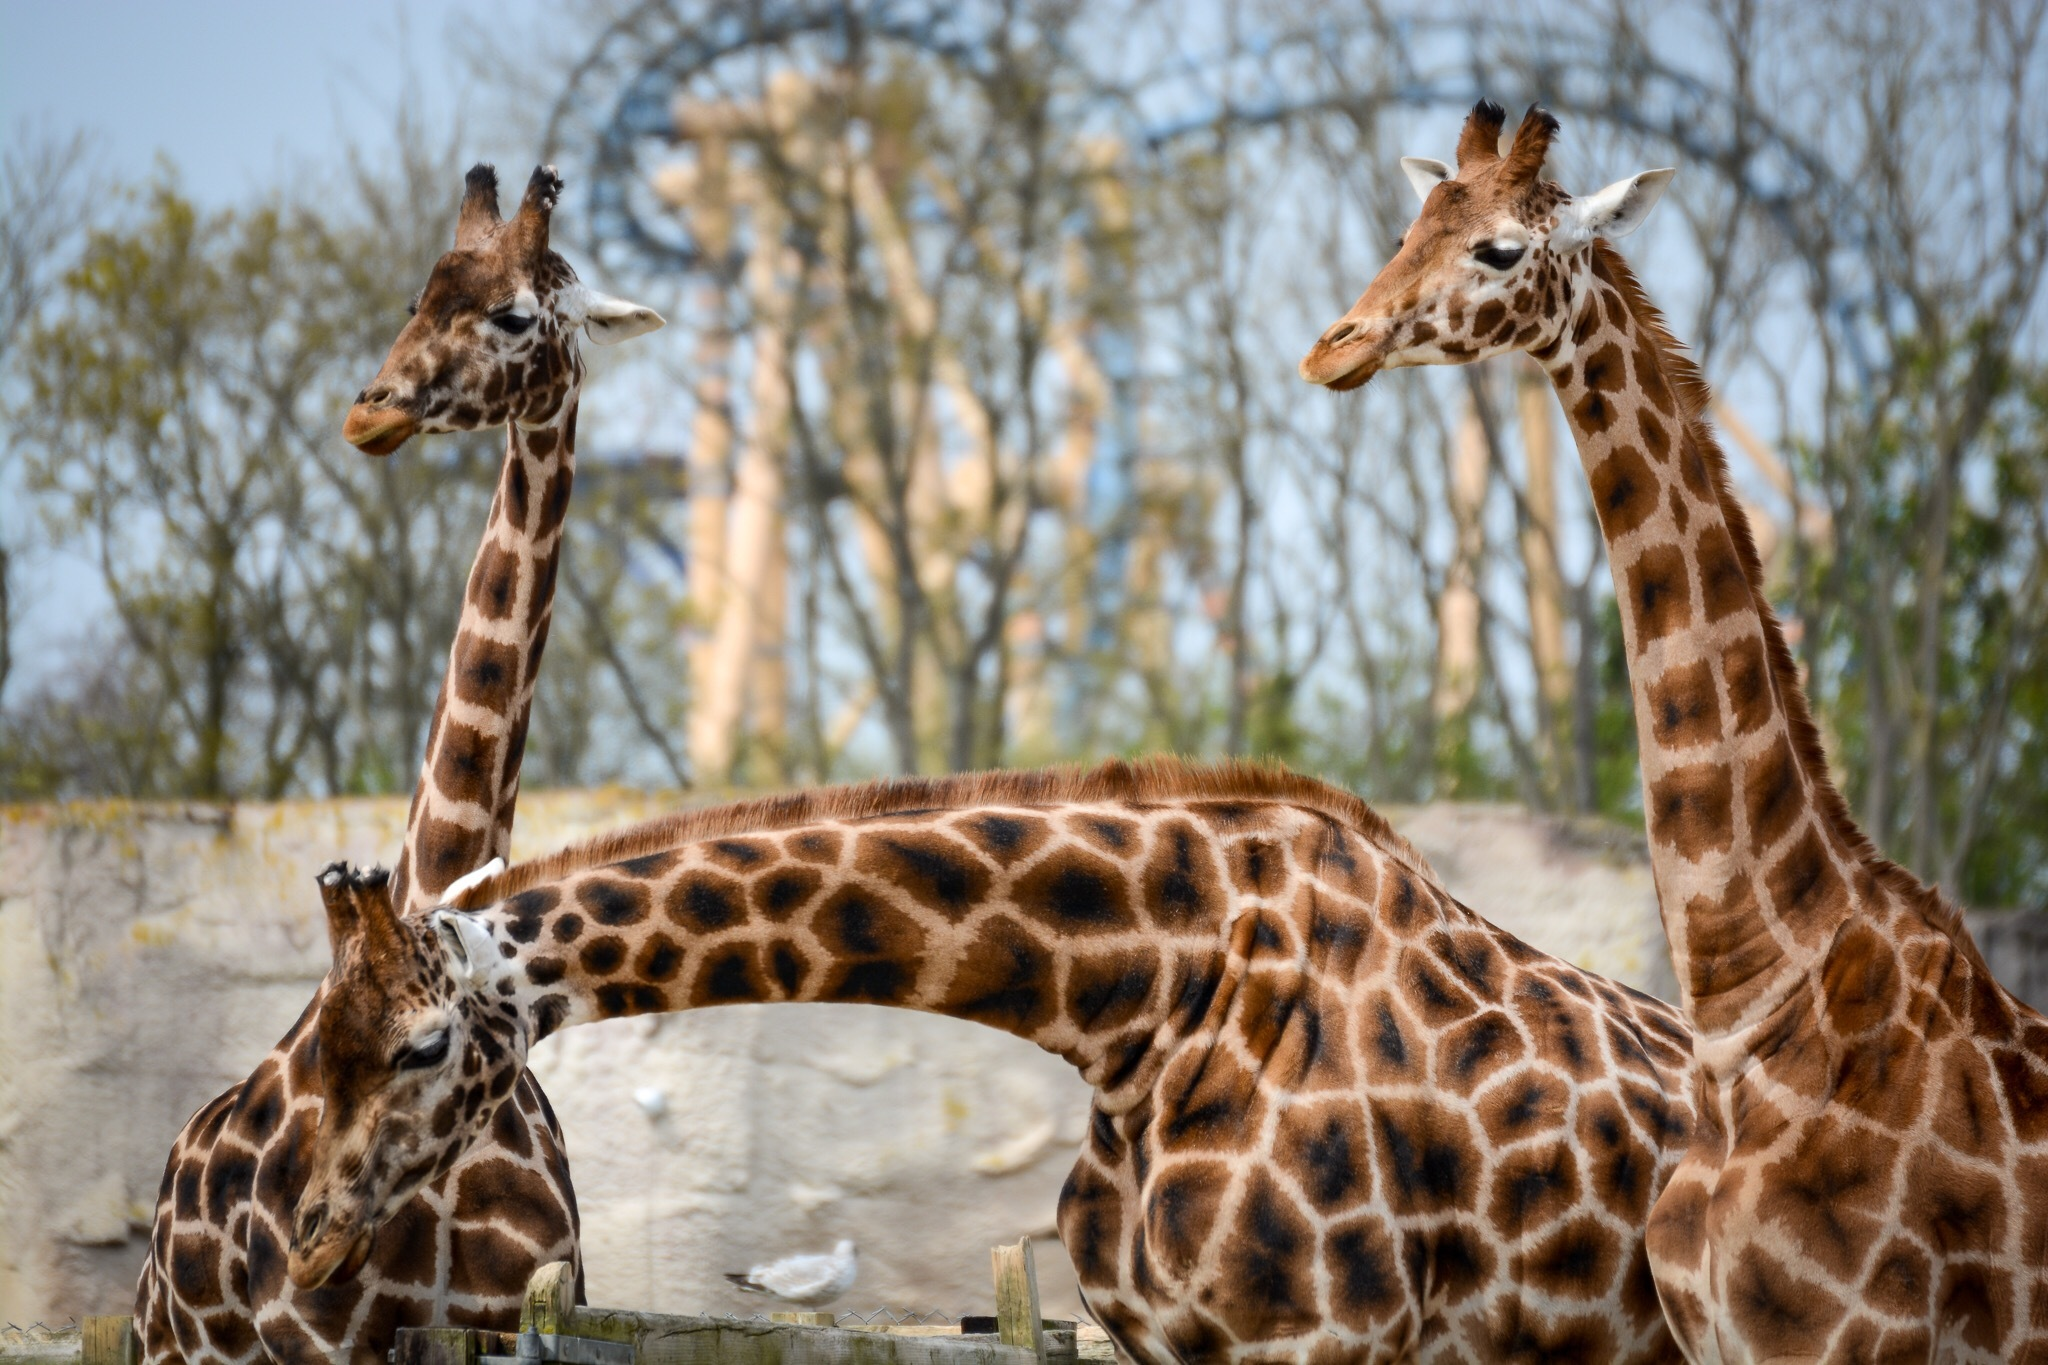 Giraffes at Flamingo Land by Kim Walker